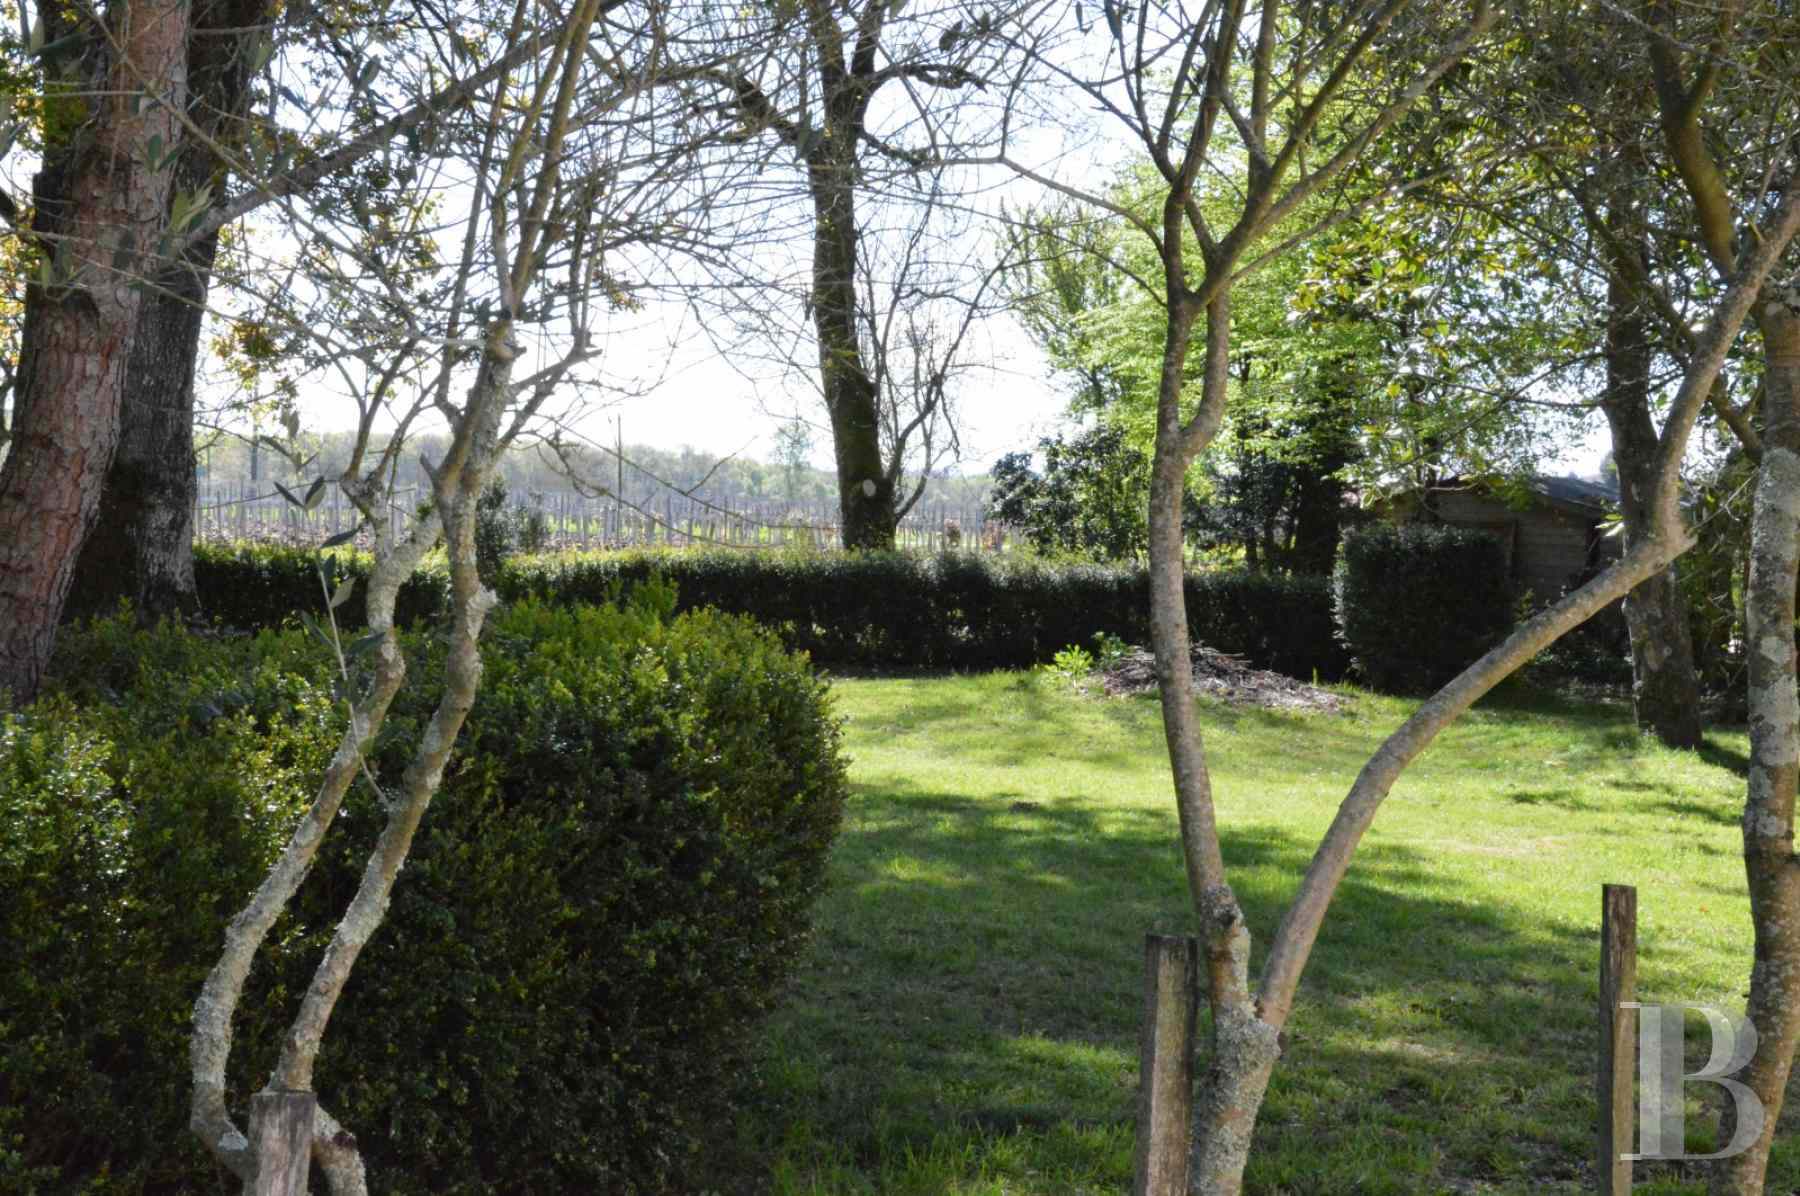 property for sale France aquitaine blaye coast - 10 zoom